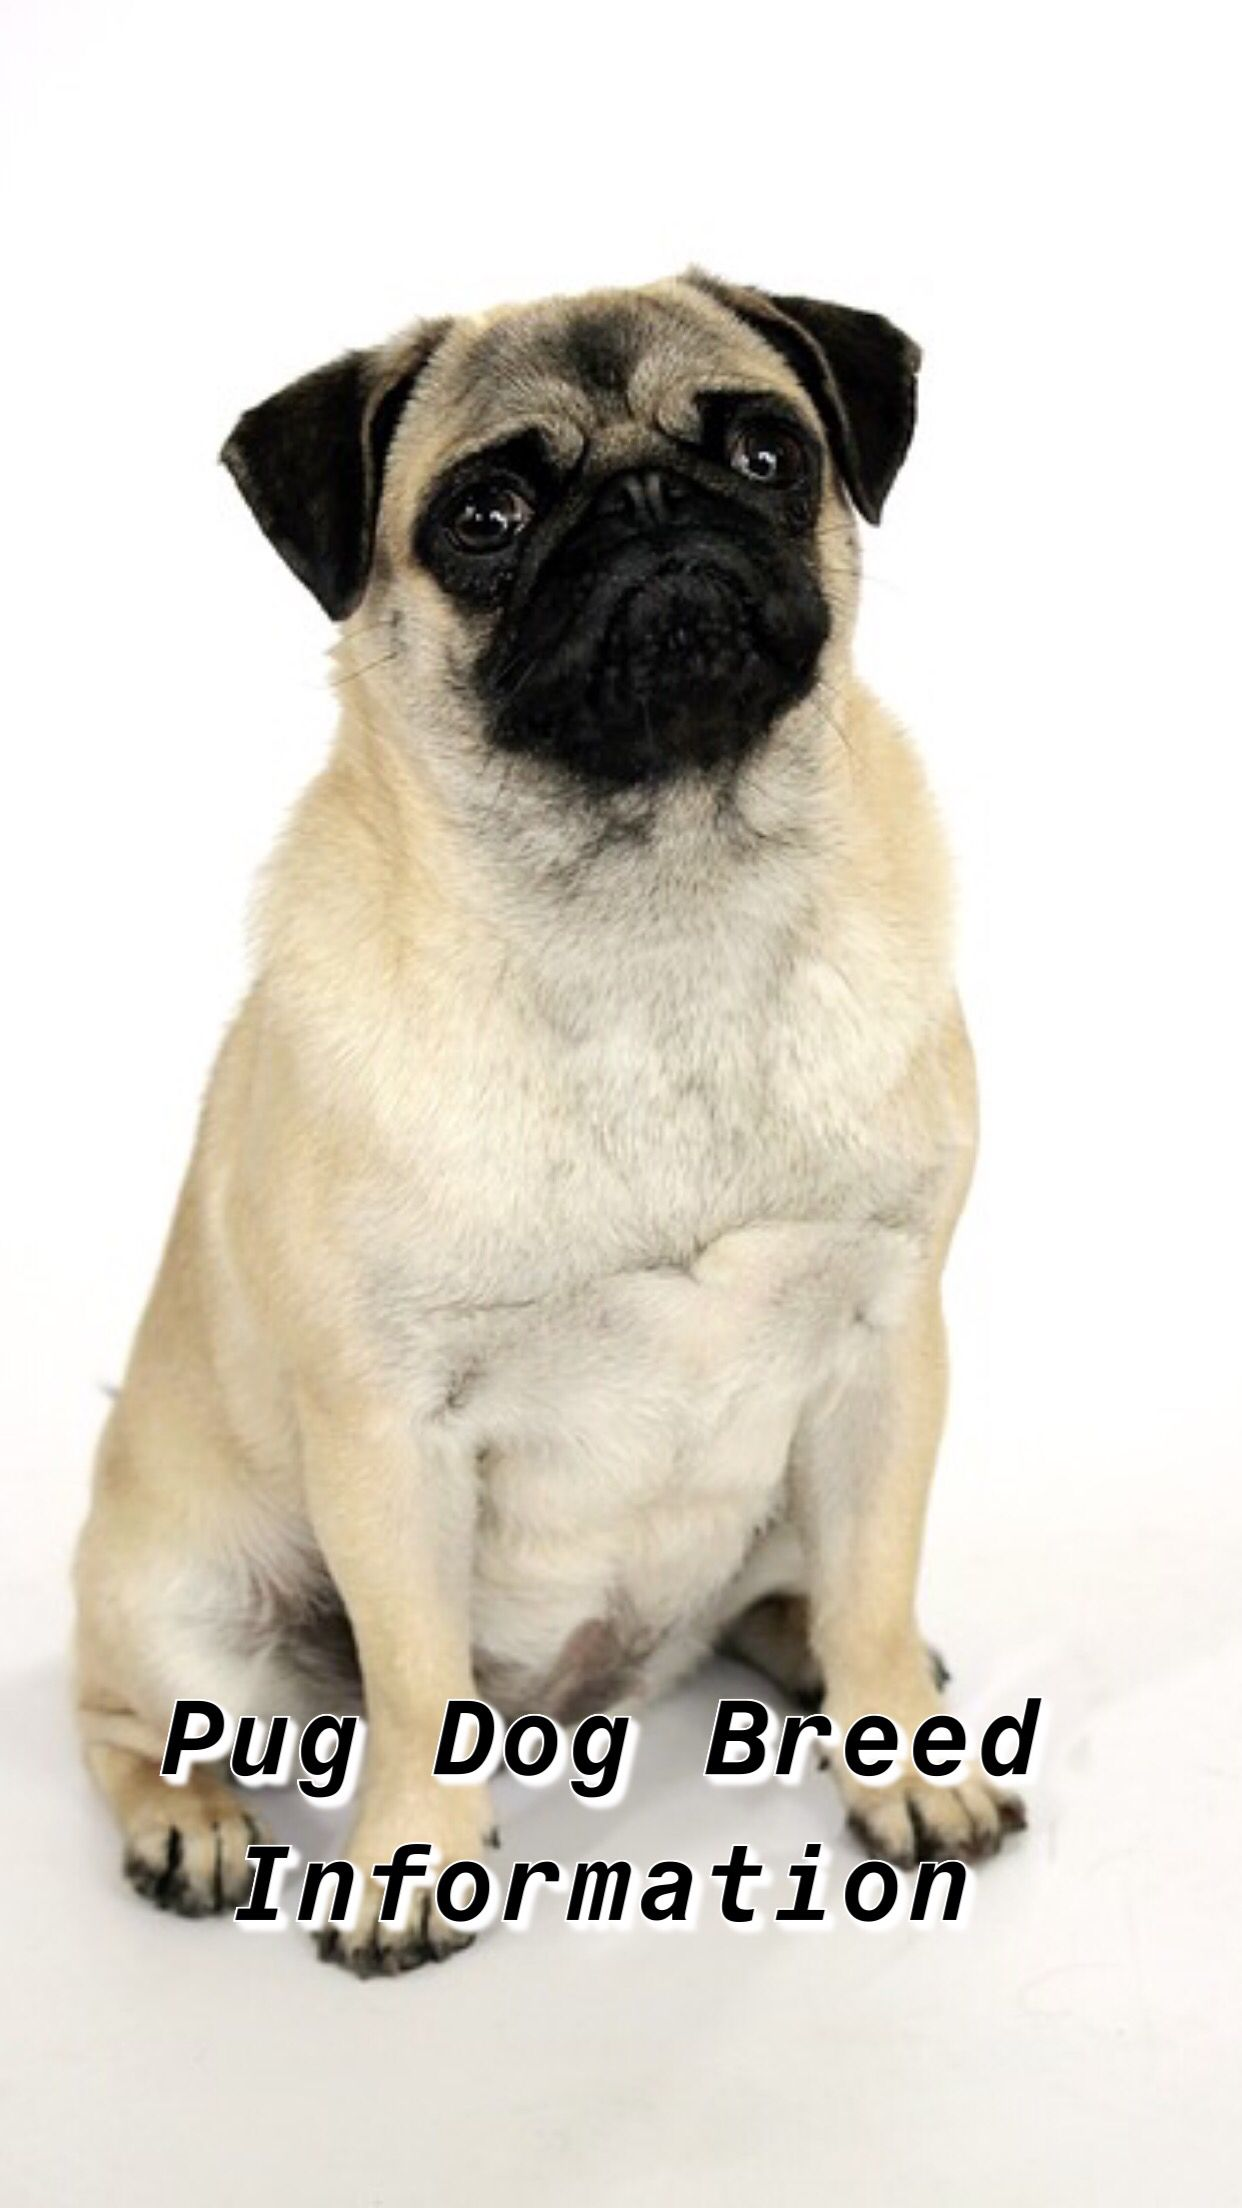 Pin By Ariffh On Puggs In 2020 Dog Breeds Pug Dog Pug Breed